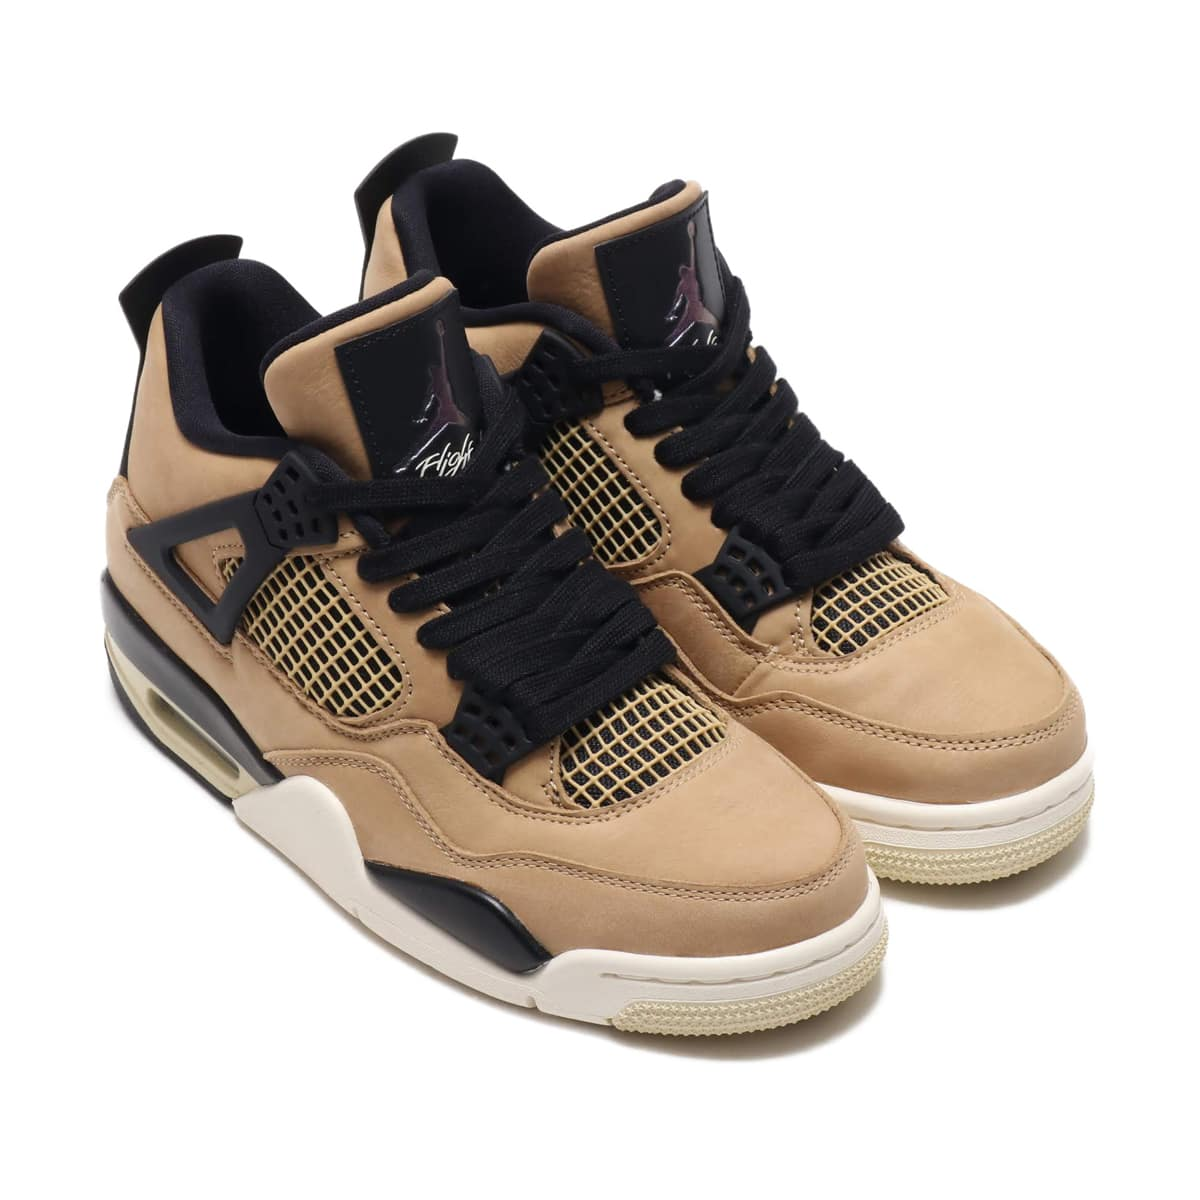 NIKE WMNS AIR JORDAN 4 RETRO MUSHROOM/MULTI-COLOR-BLACK-FOSSIL 19FA-S_photo_large